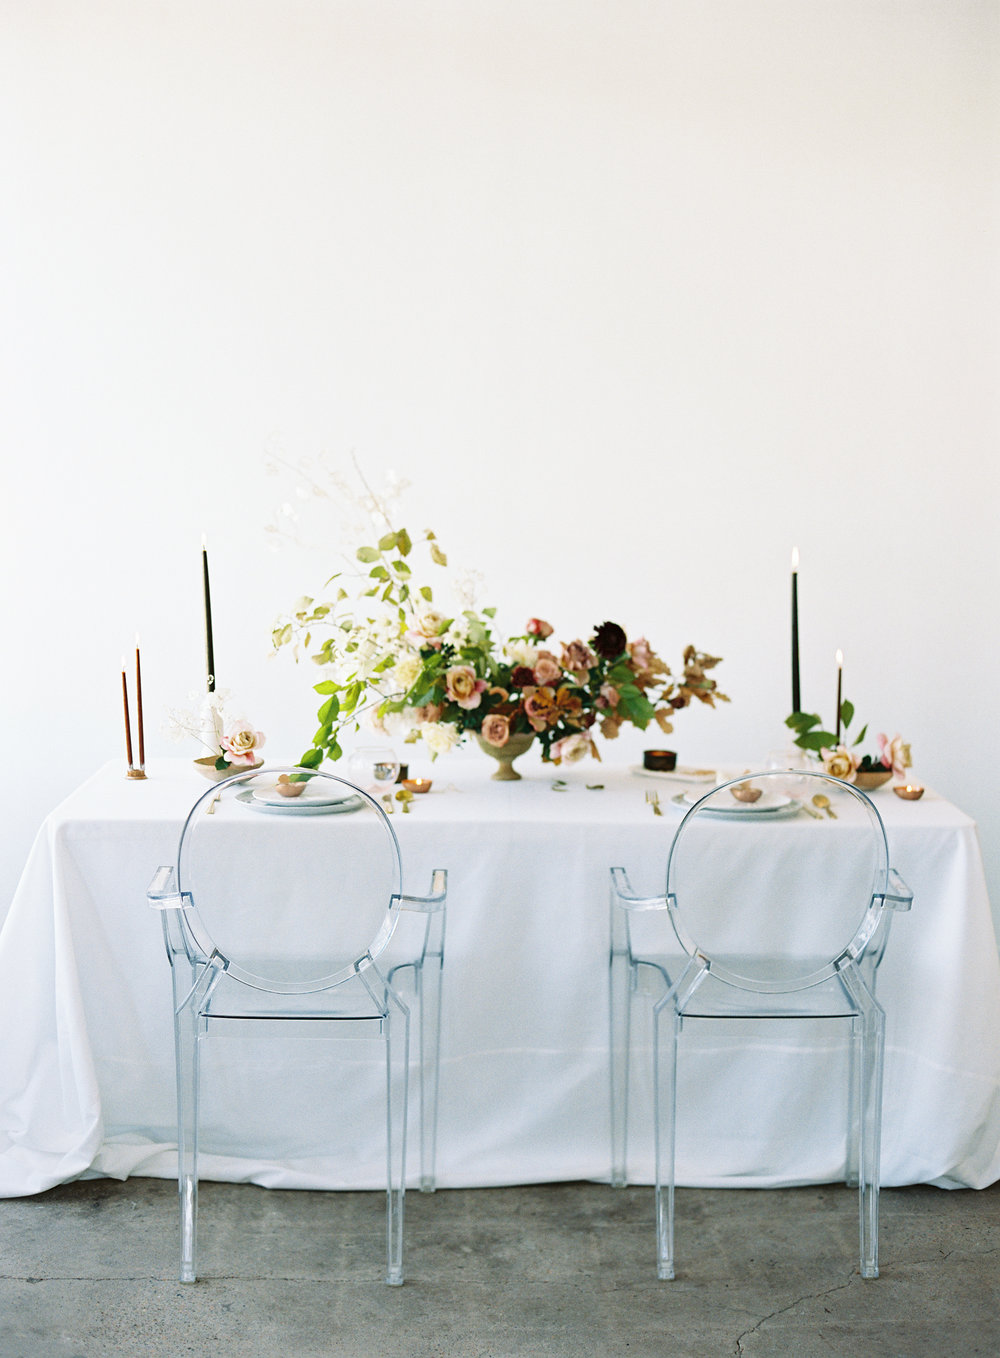 Sentient Floral Workshop-Carrie King Photographer-020.jpg